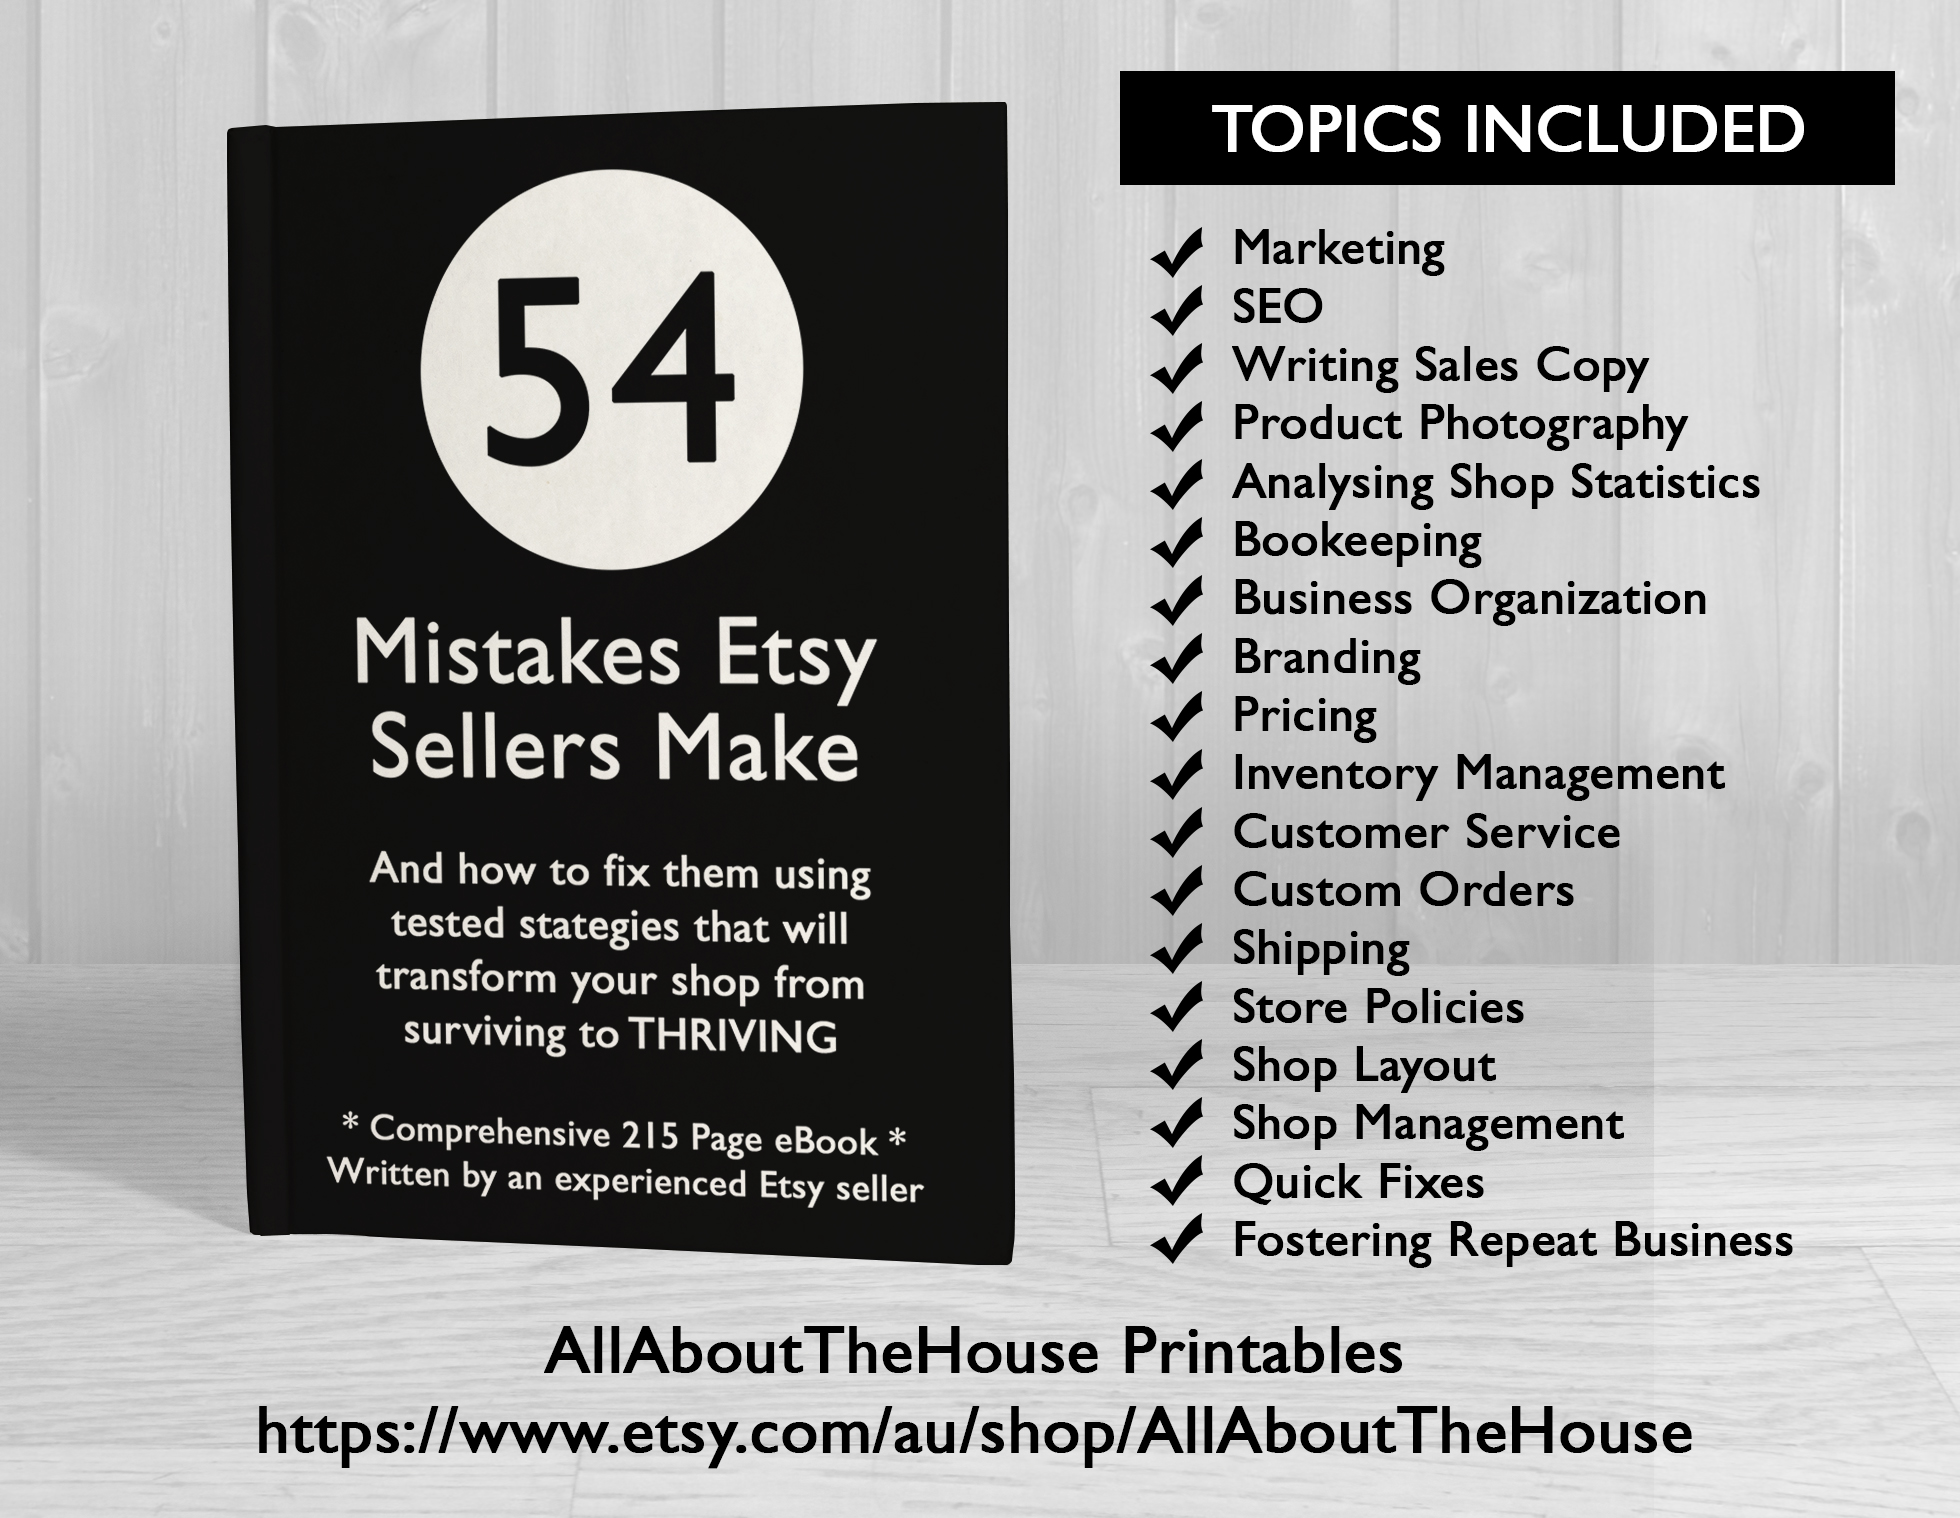 etsy-mistakes-sellers-make-ebook-online-business-shipping-pricing-customer-service-social-media-marketing-pinterest-shop-statistics-product-description-sales-copy